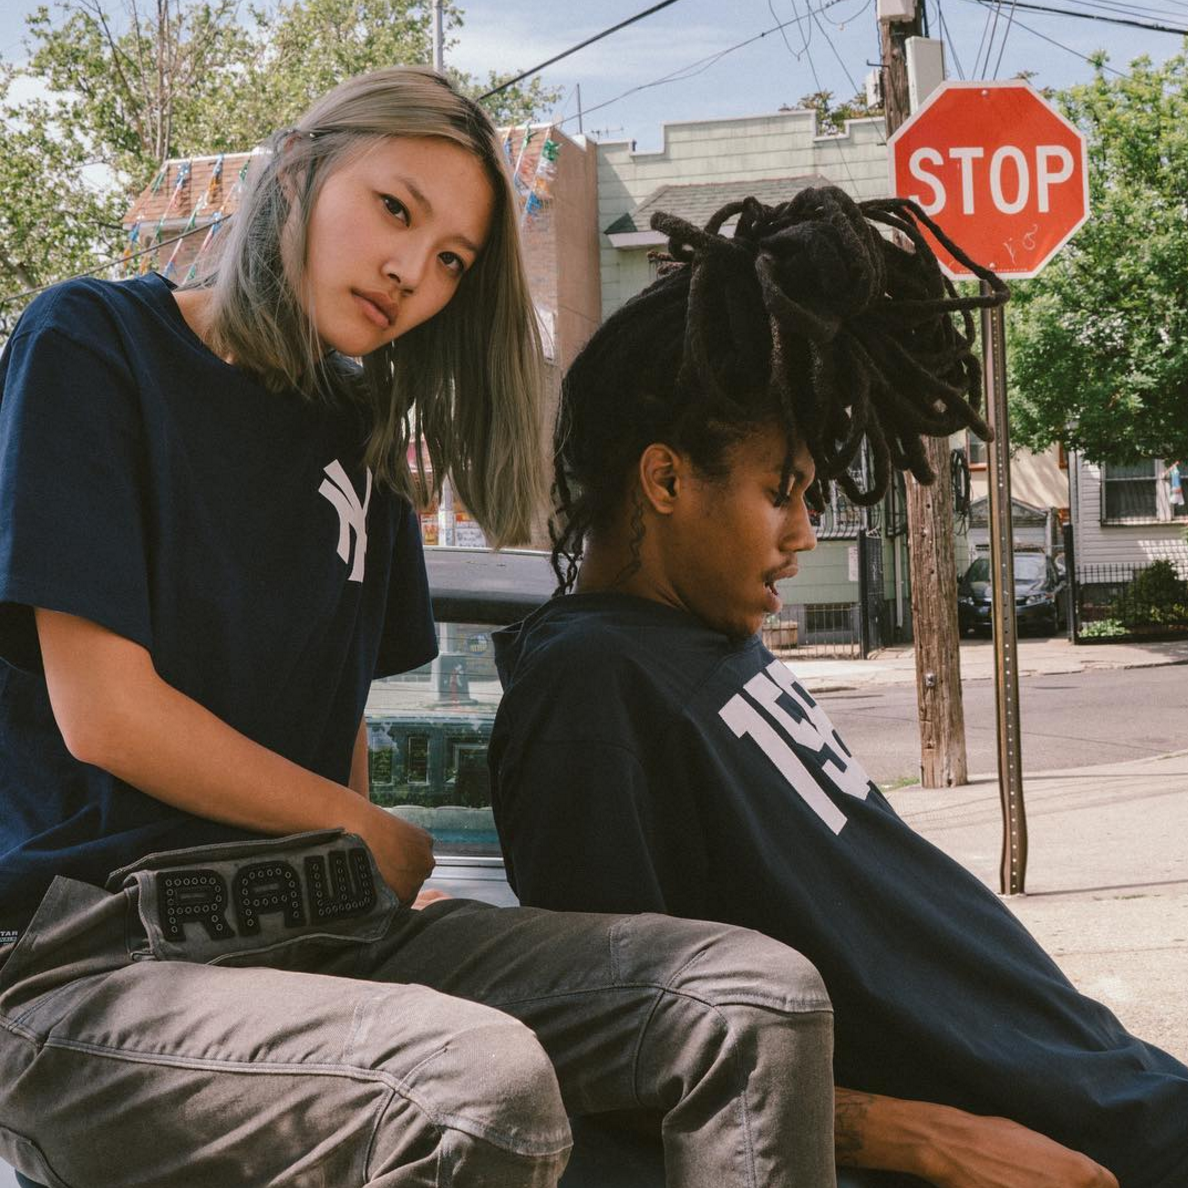 Screen Shot 2016-07-12 at 3.37.14 PM